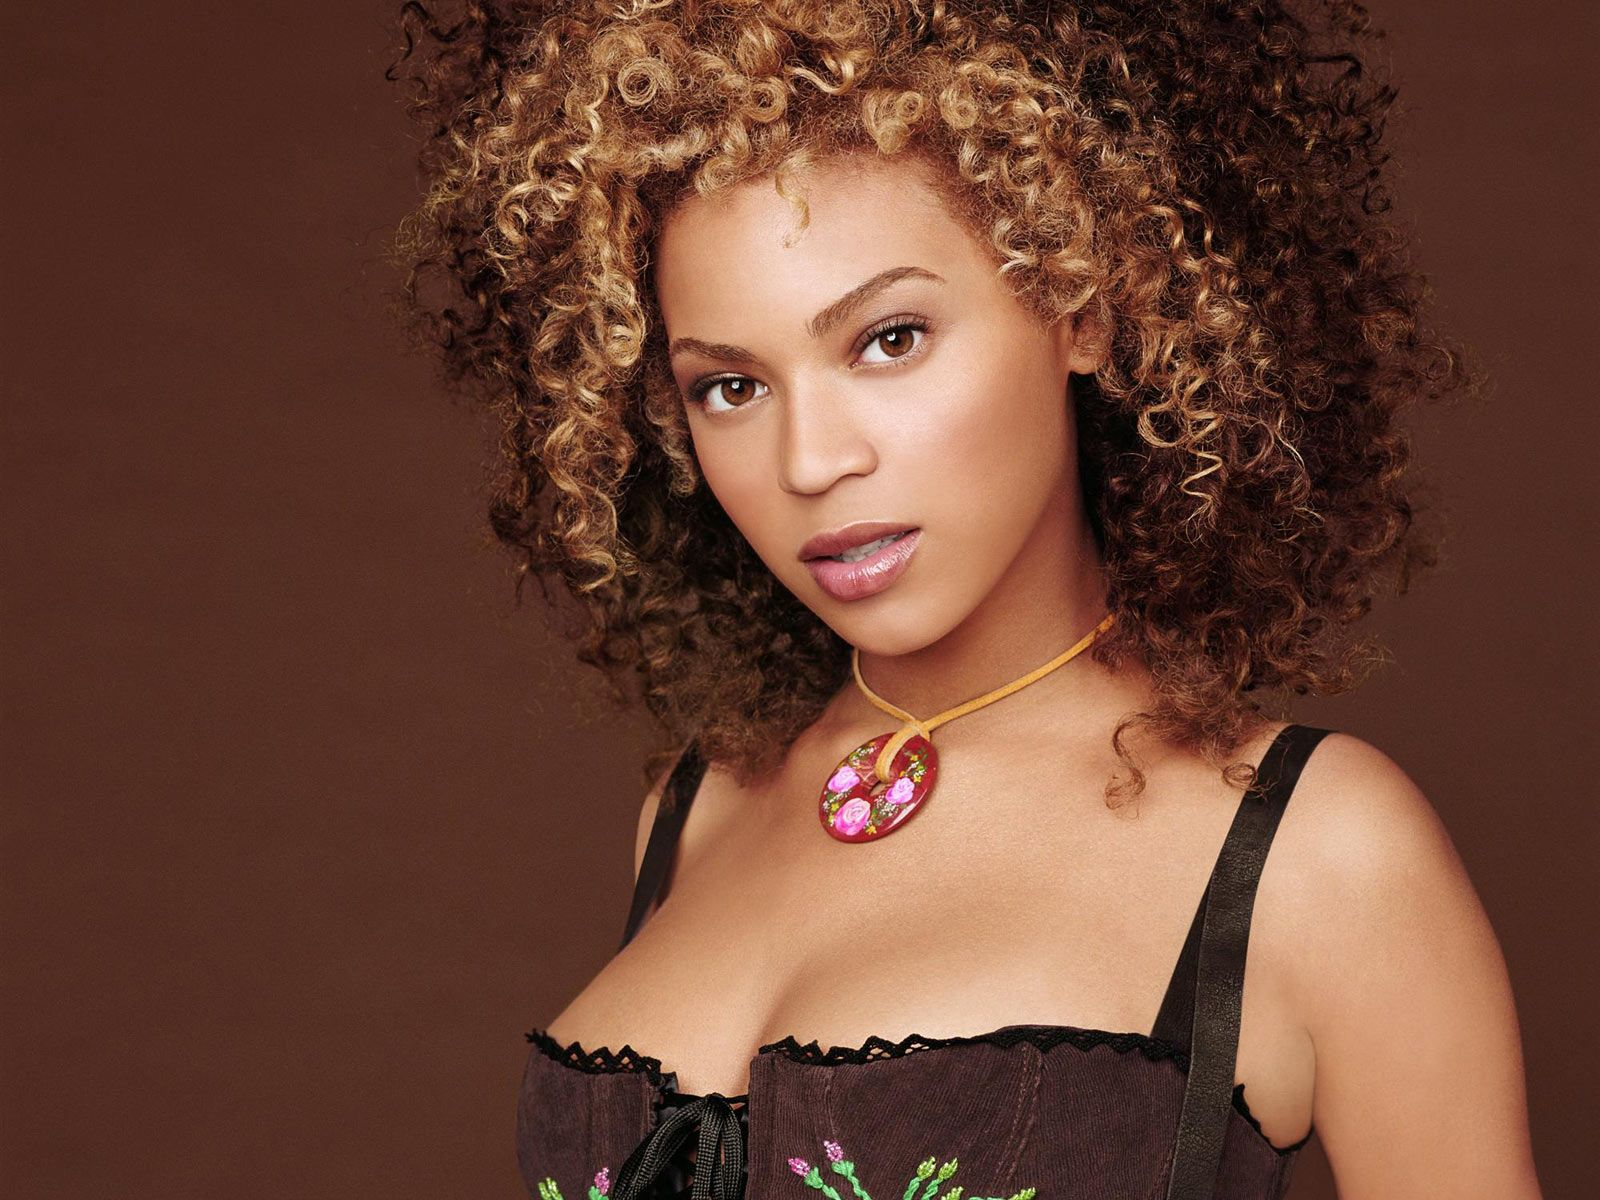 Hot Beyonce Knowles's Wallpapers | World Amazing Wallpapers | Hot ...